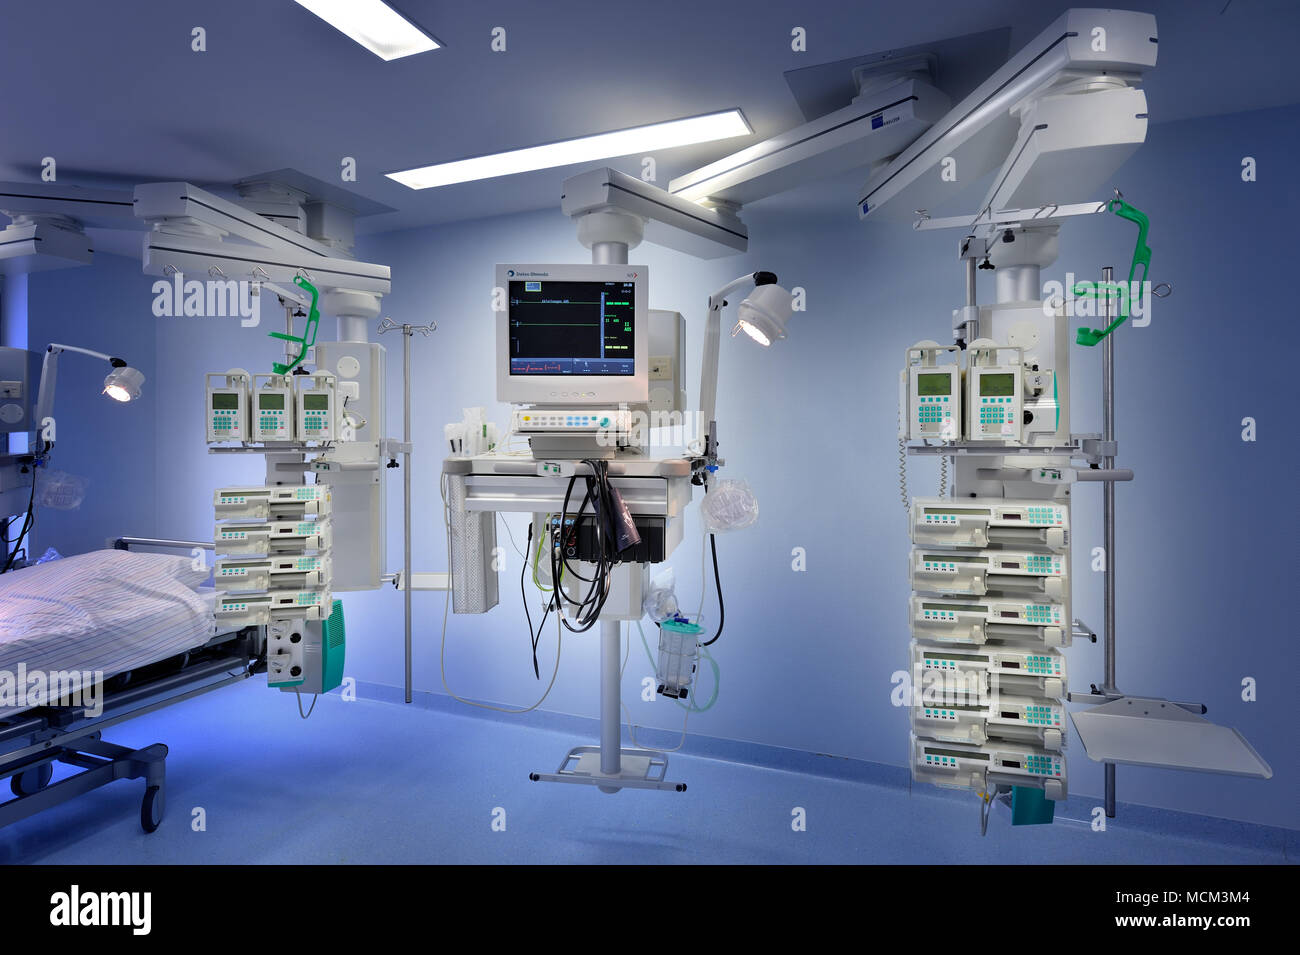 technical equipment on intensive care unit - Stock Image